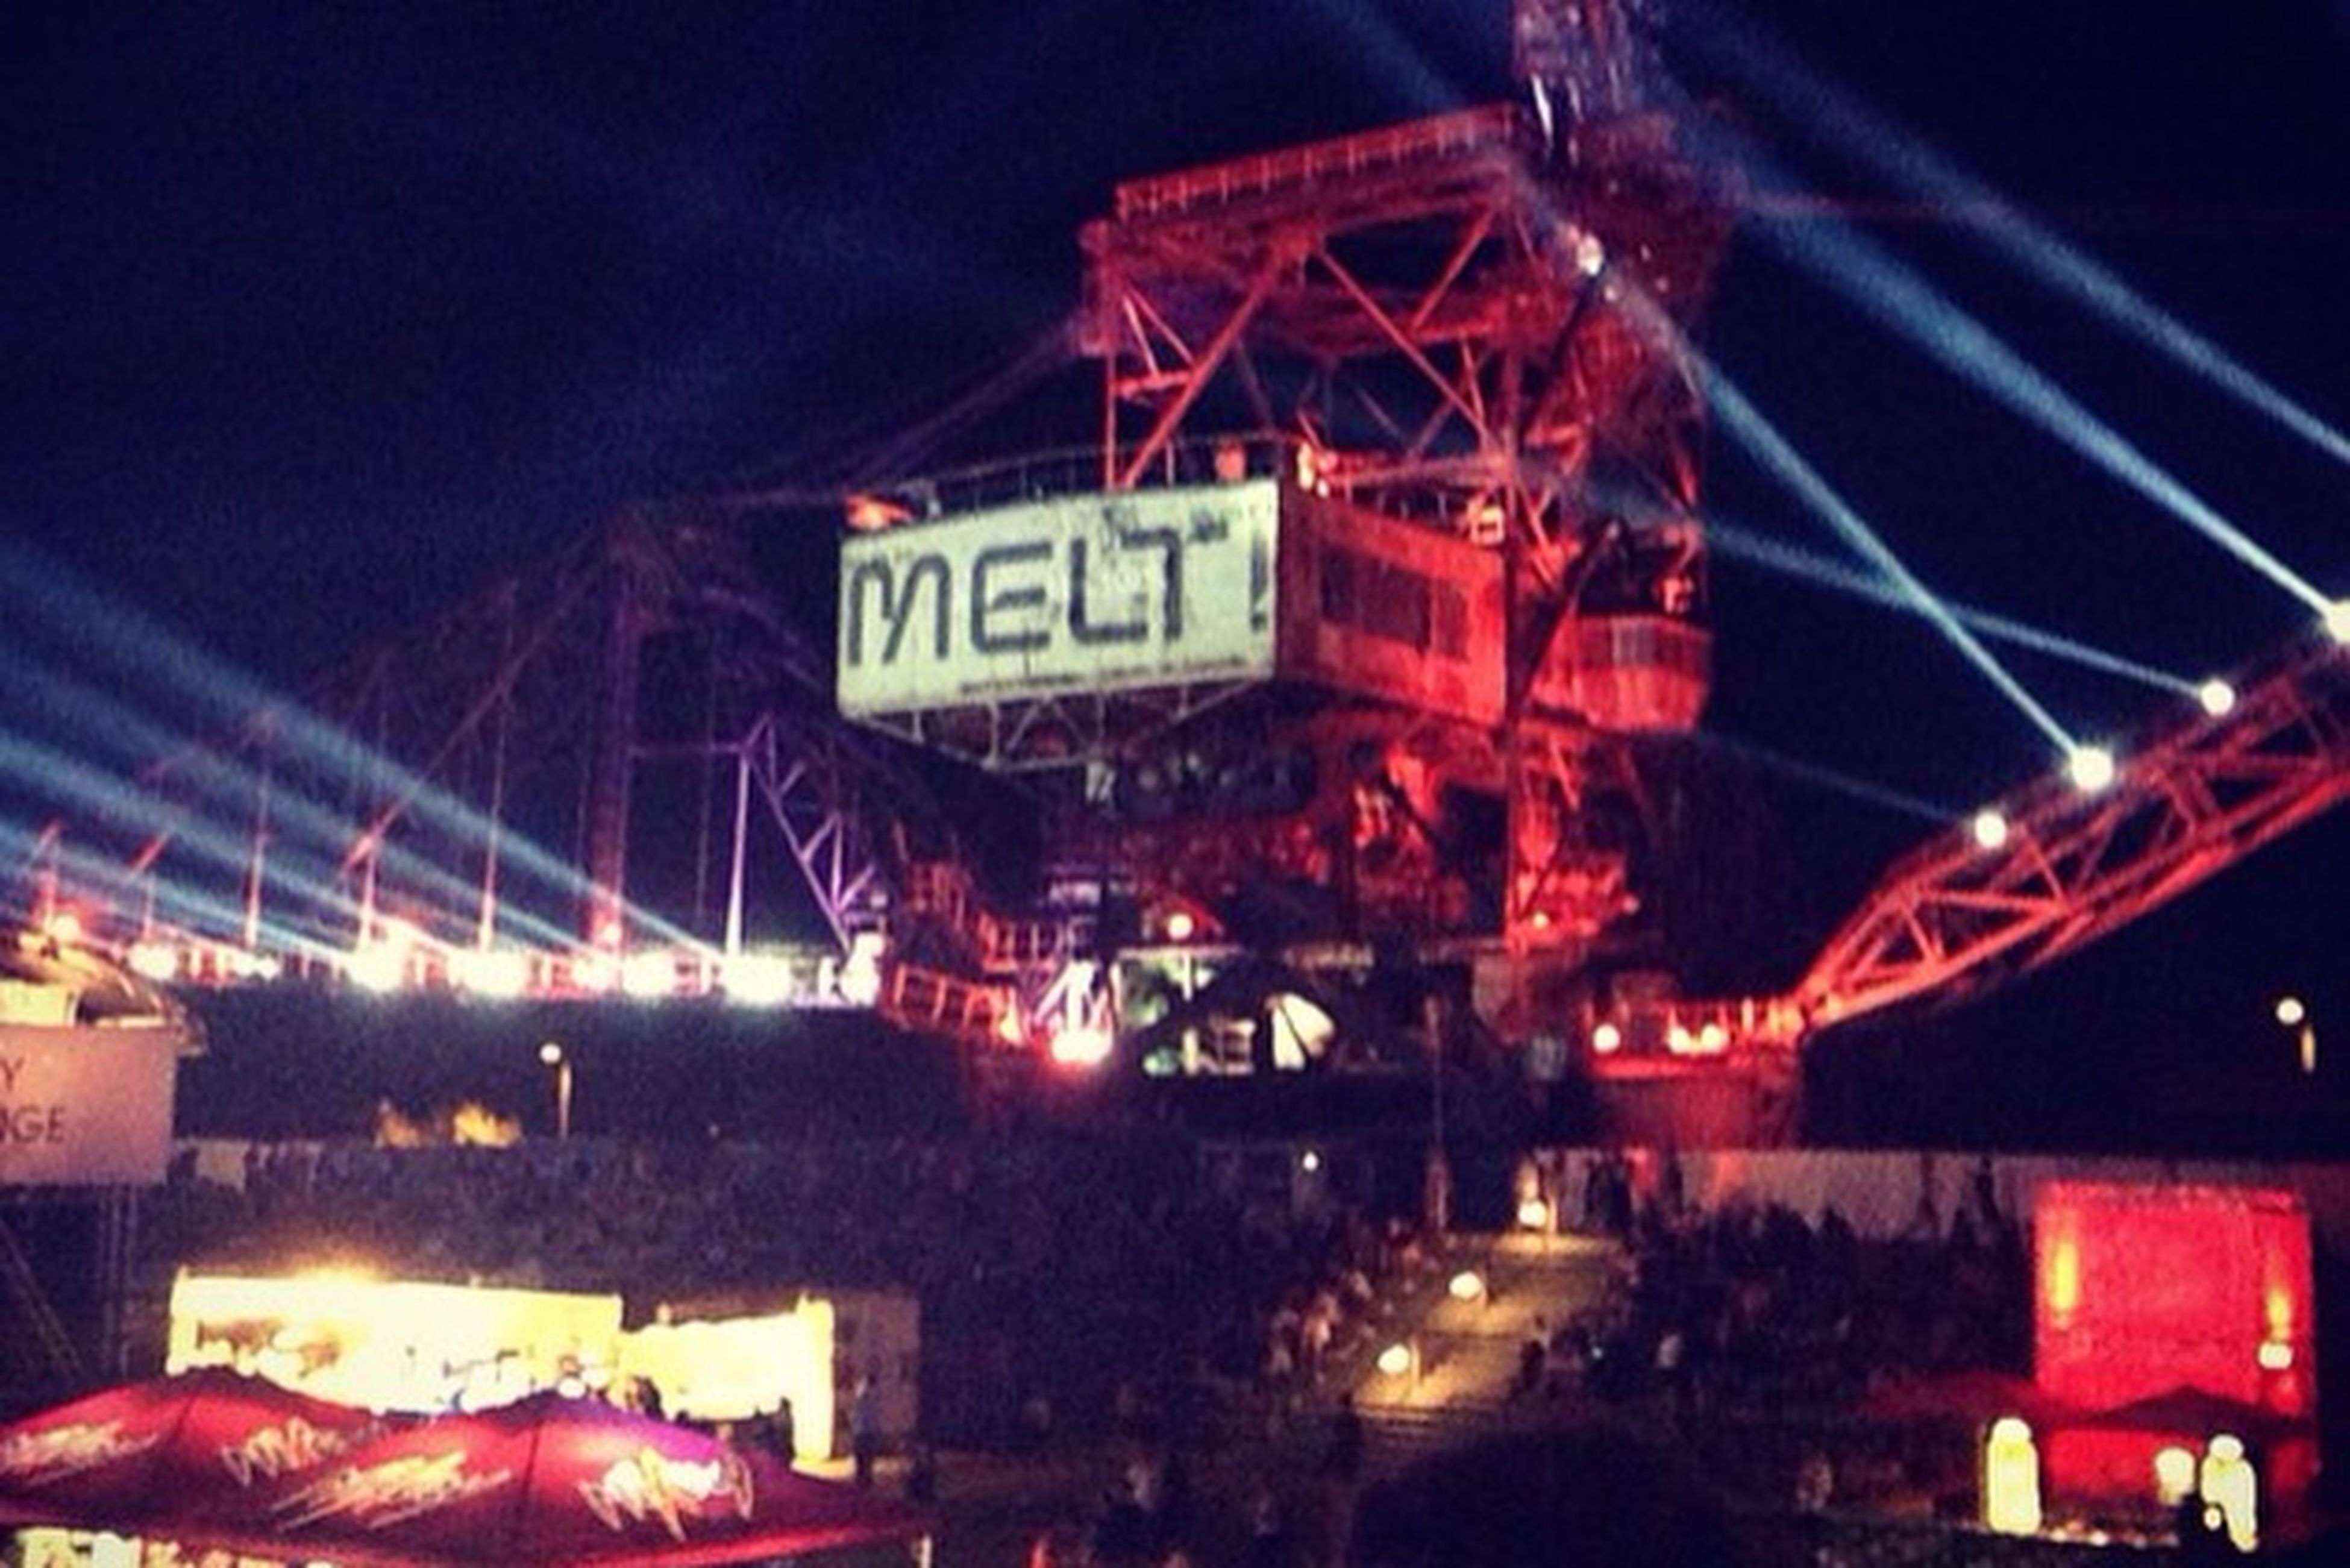 This past weekend at MELT!